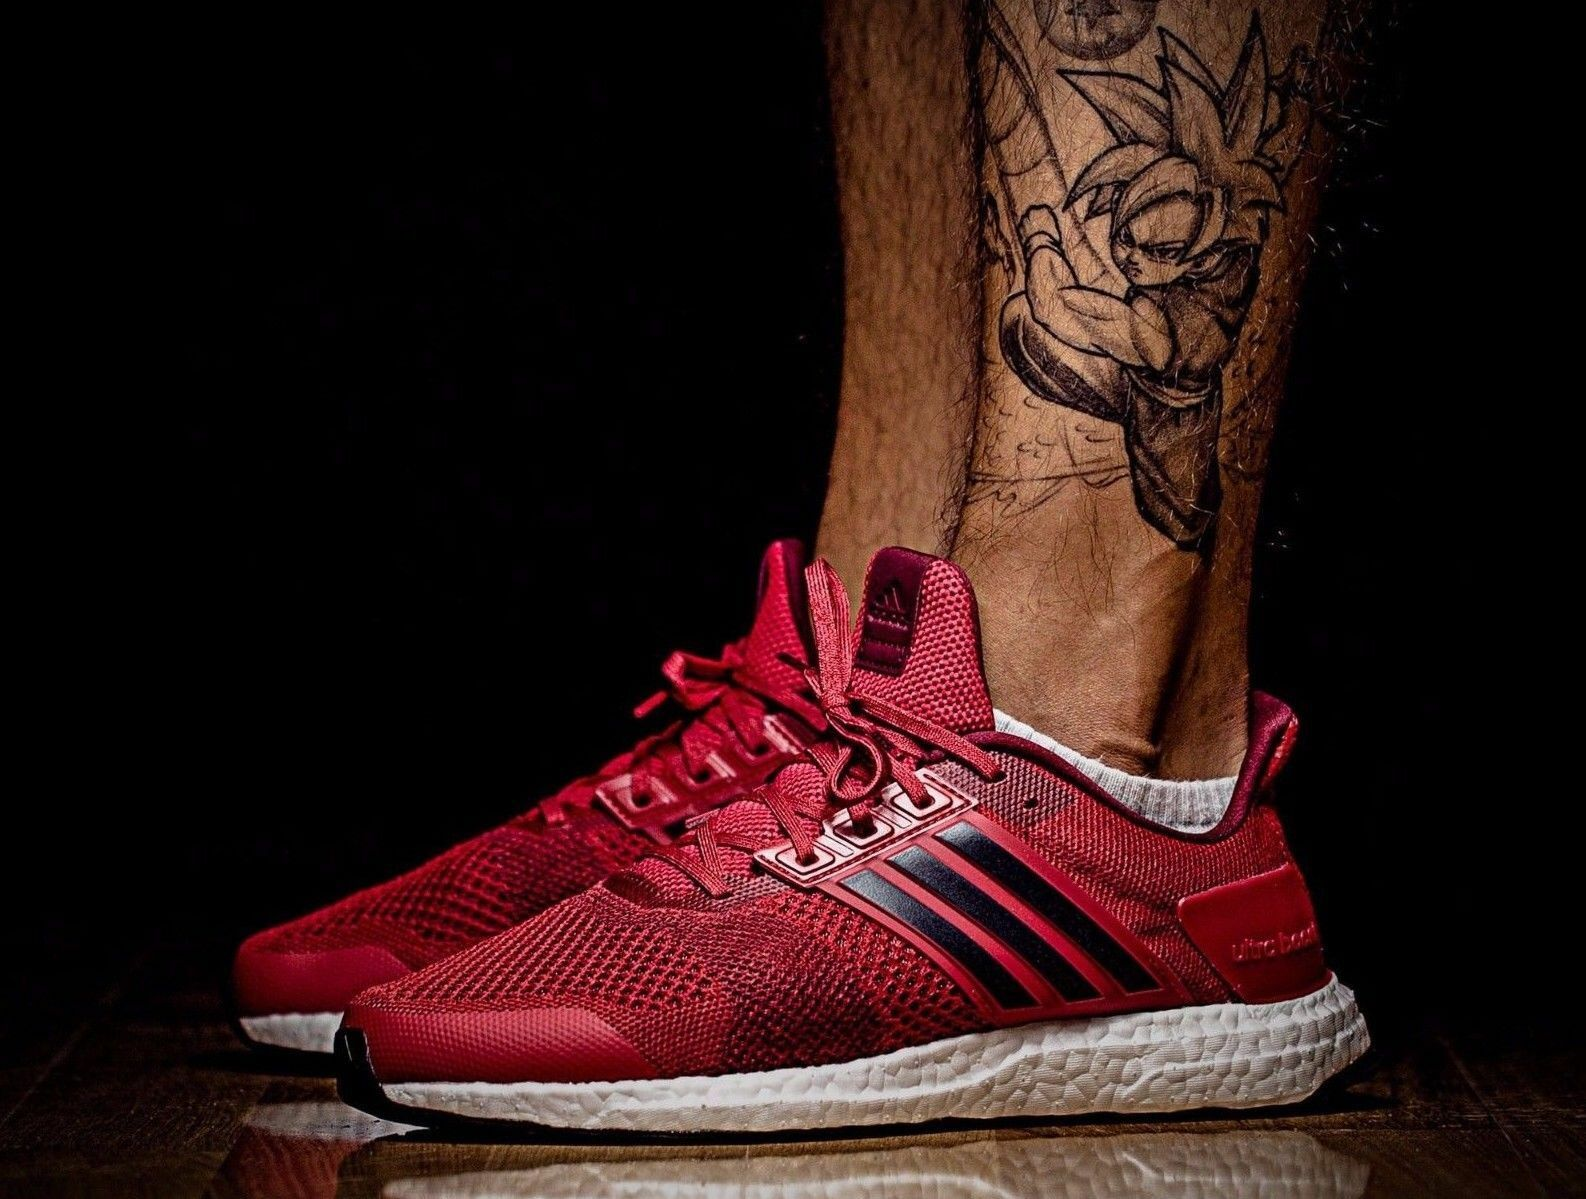 MEN'S ADIDAS ULTRA BOOST ST fonctionnement chaussures12 EUR 47 1/3 BB3930 rouge RARE